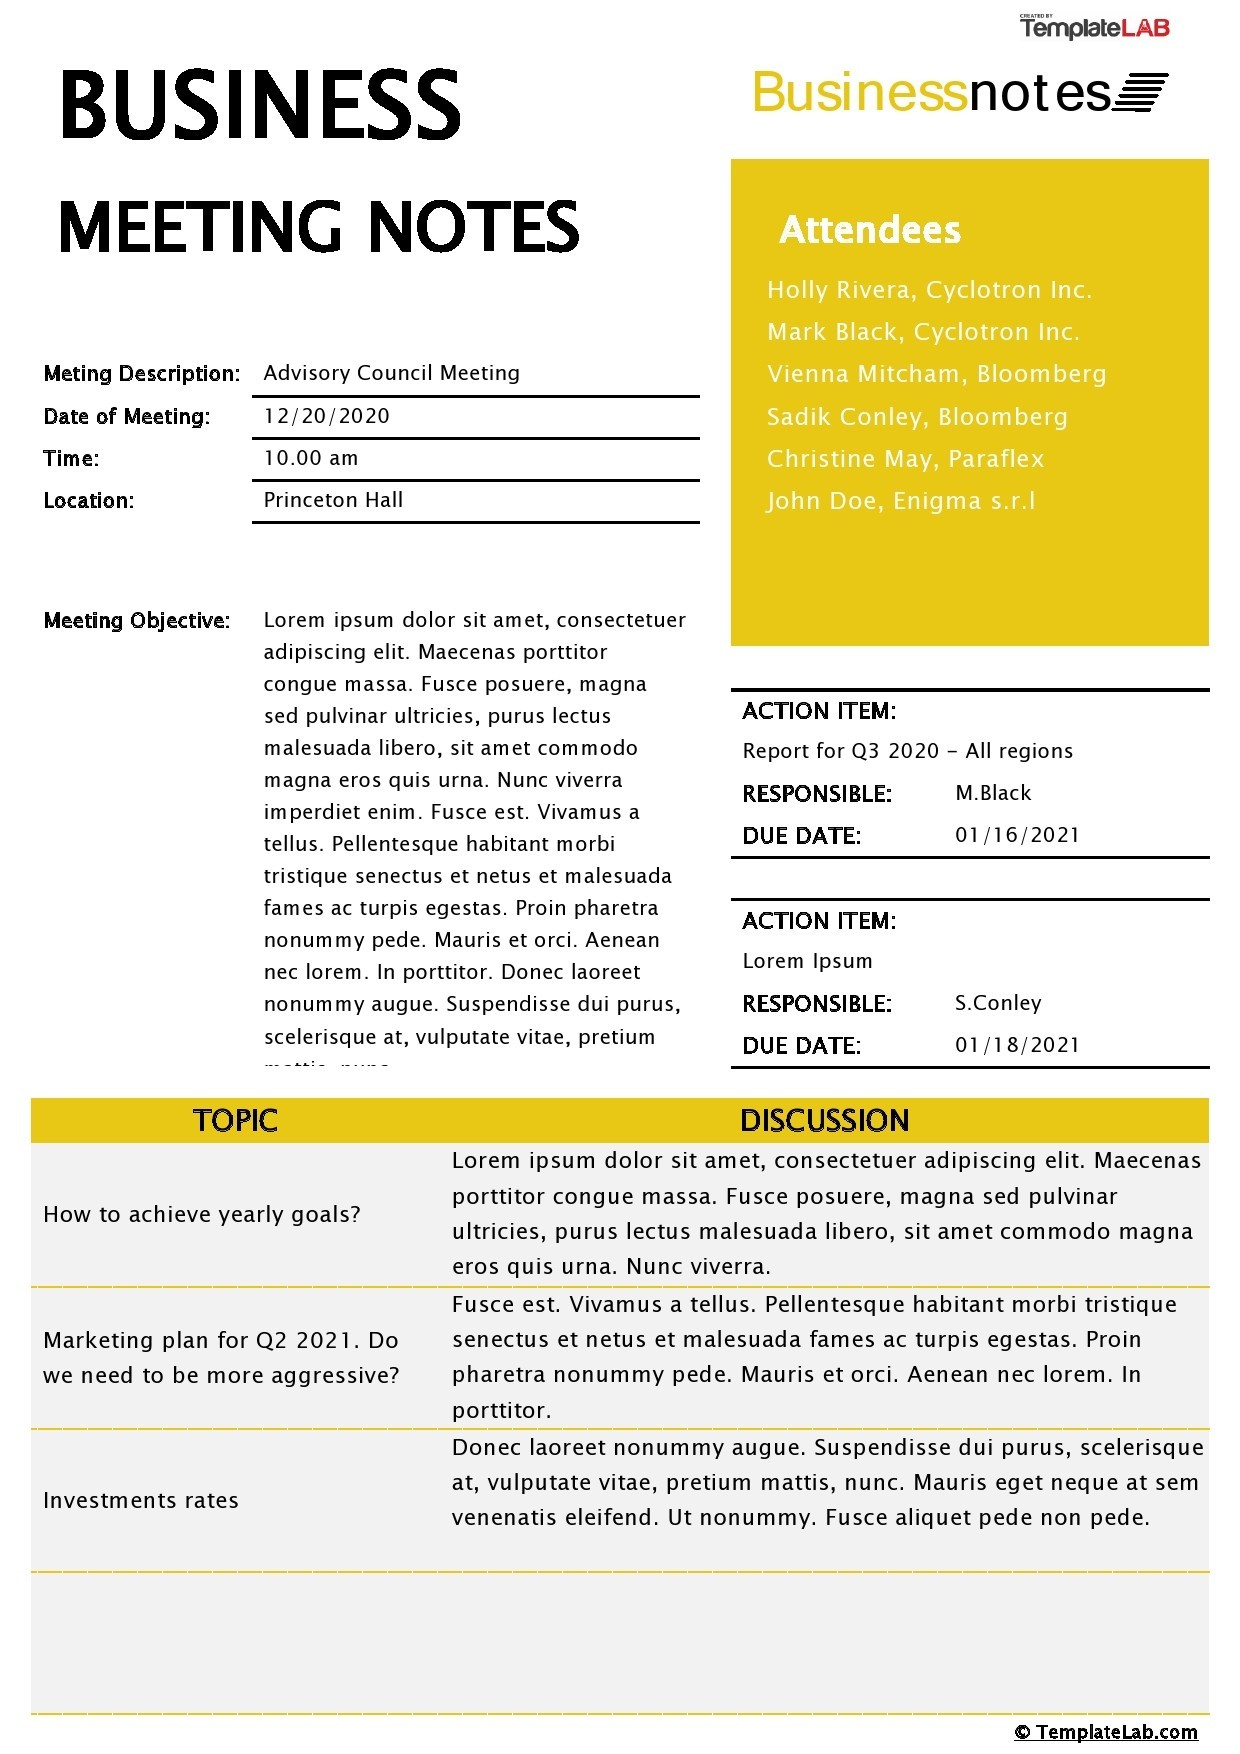 Free Business Meeting Notes Template - TemplateLab.com